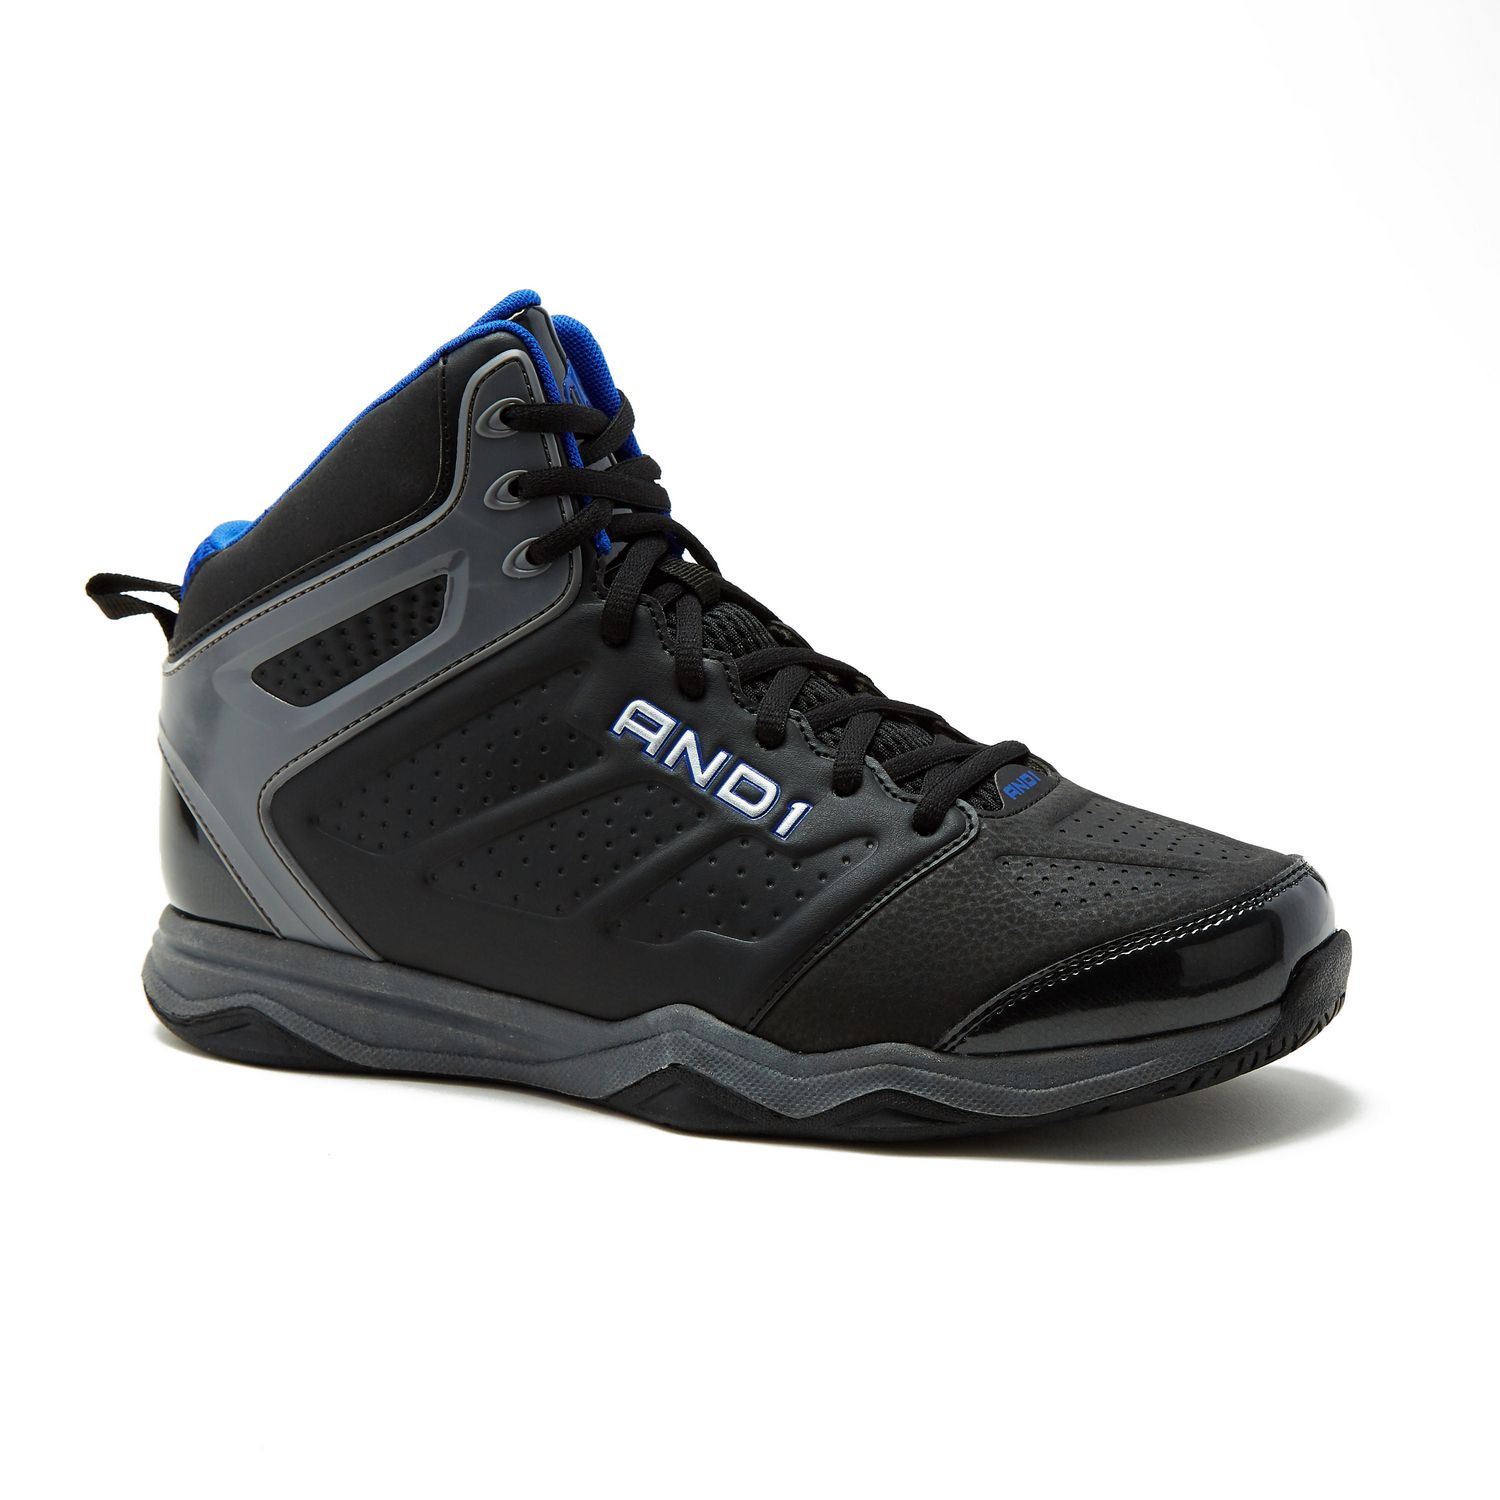 hot sale online hot sales special section Chaussures de basketball Pivot pour hommes And1 | Walmart Canada